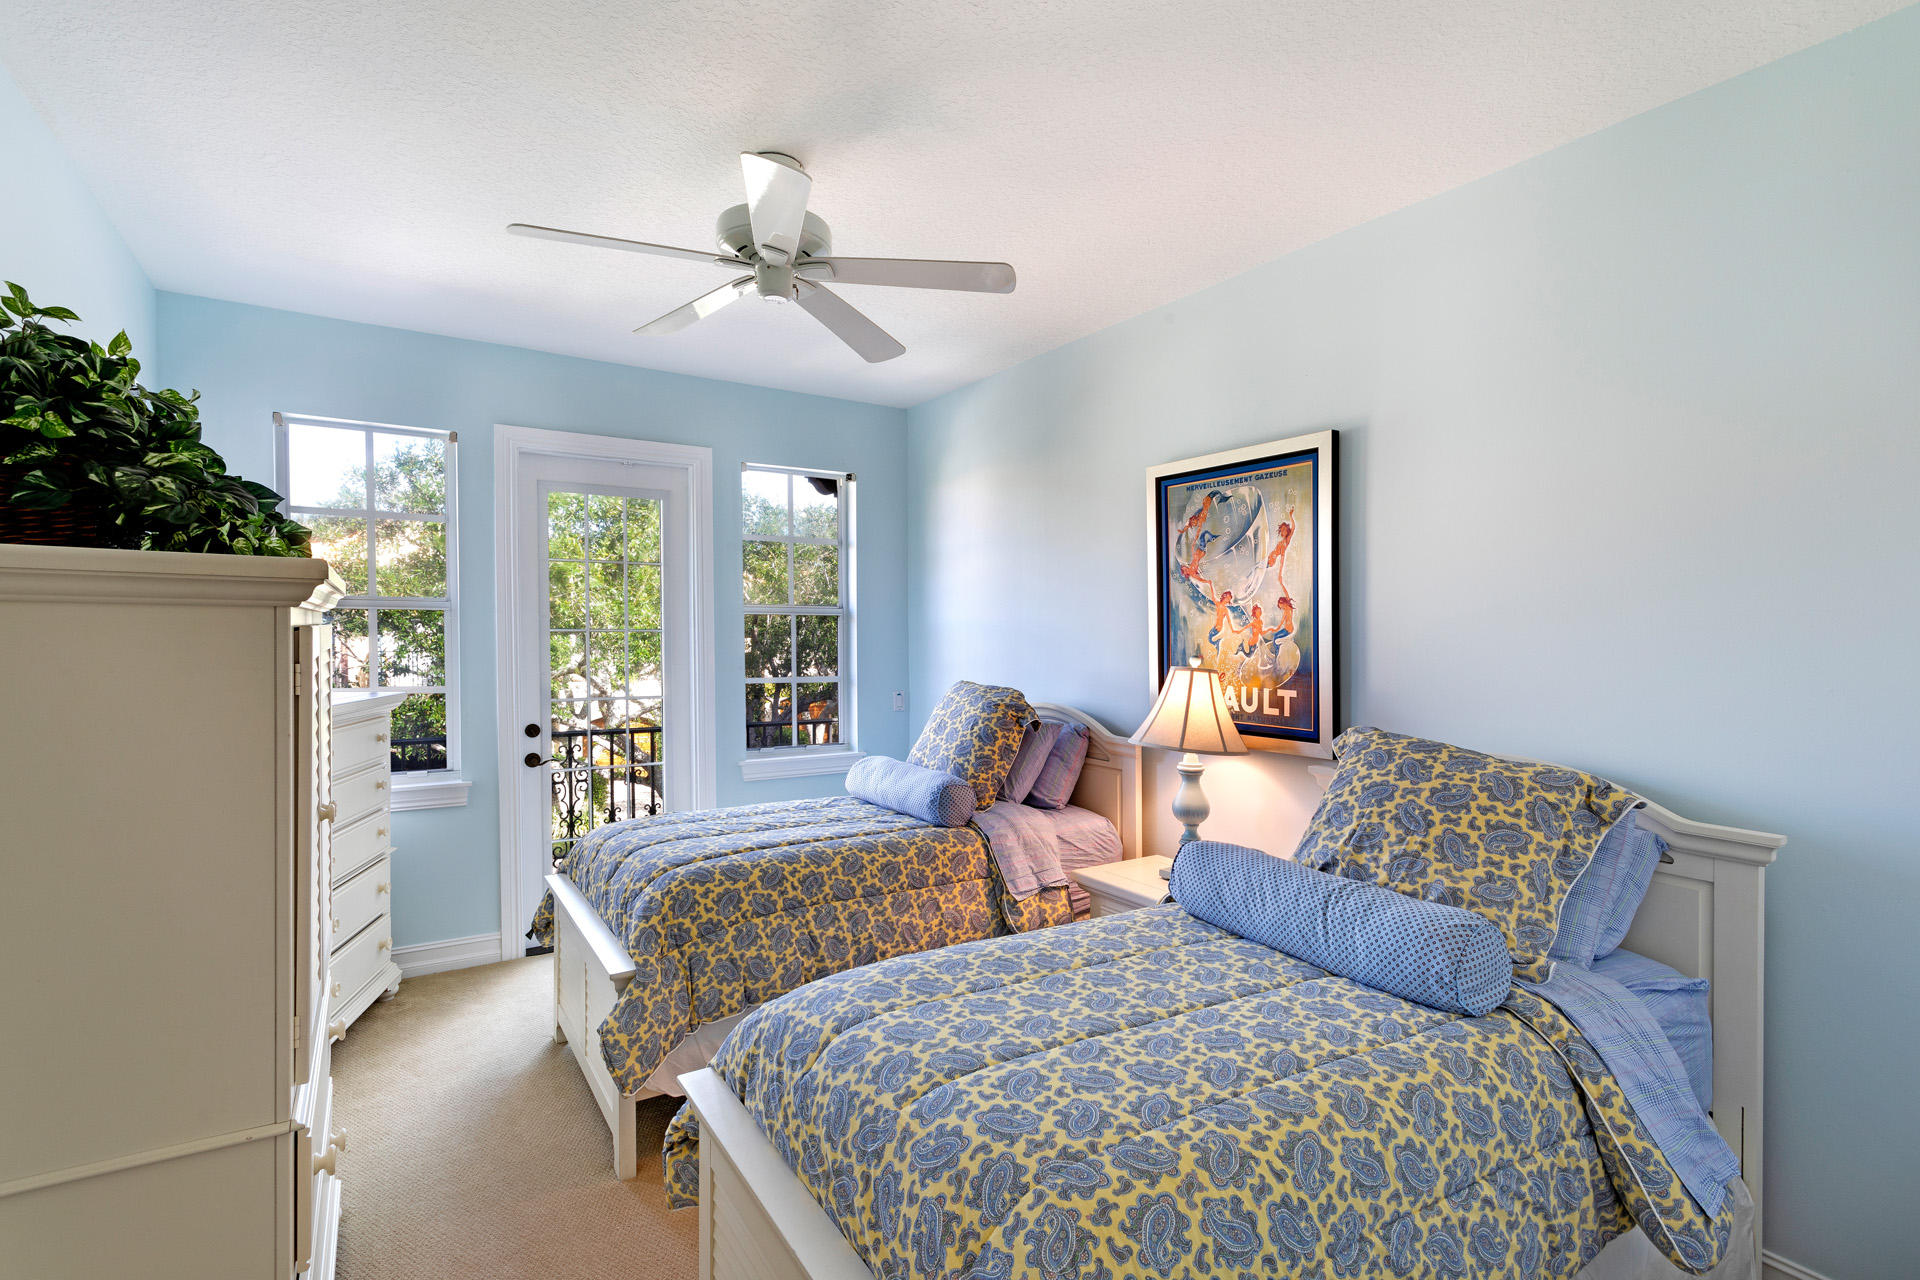 1026 Coralina Lane, Delray Beach, Florida 33483, 3 Bedrooms Bedrooms, ,2.1 BathroomsBathrooms,Townhouse,For Sale,Coralina,RX-10588843